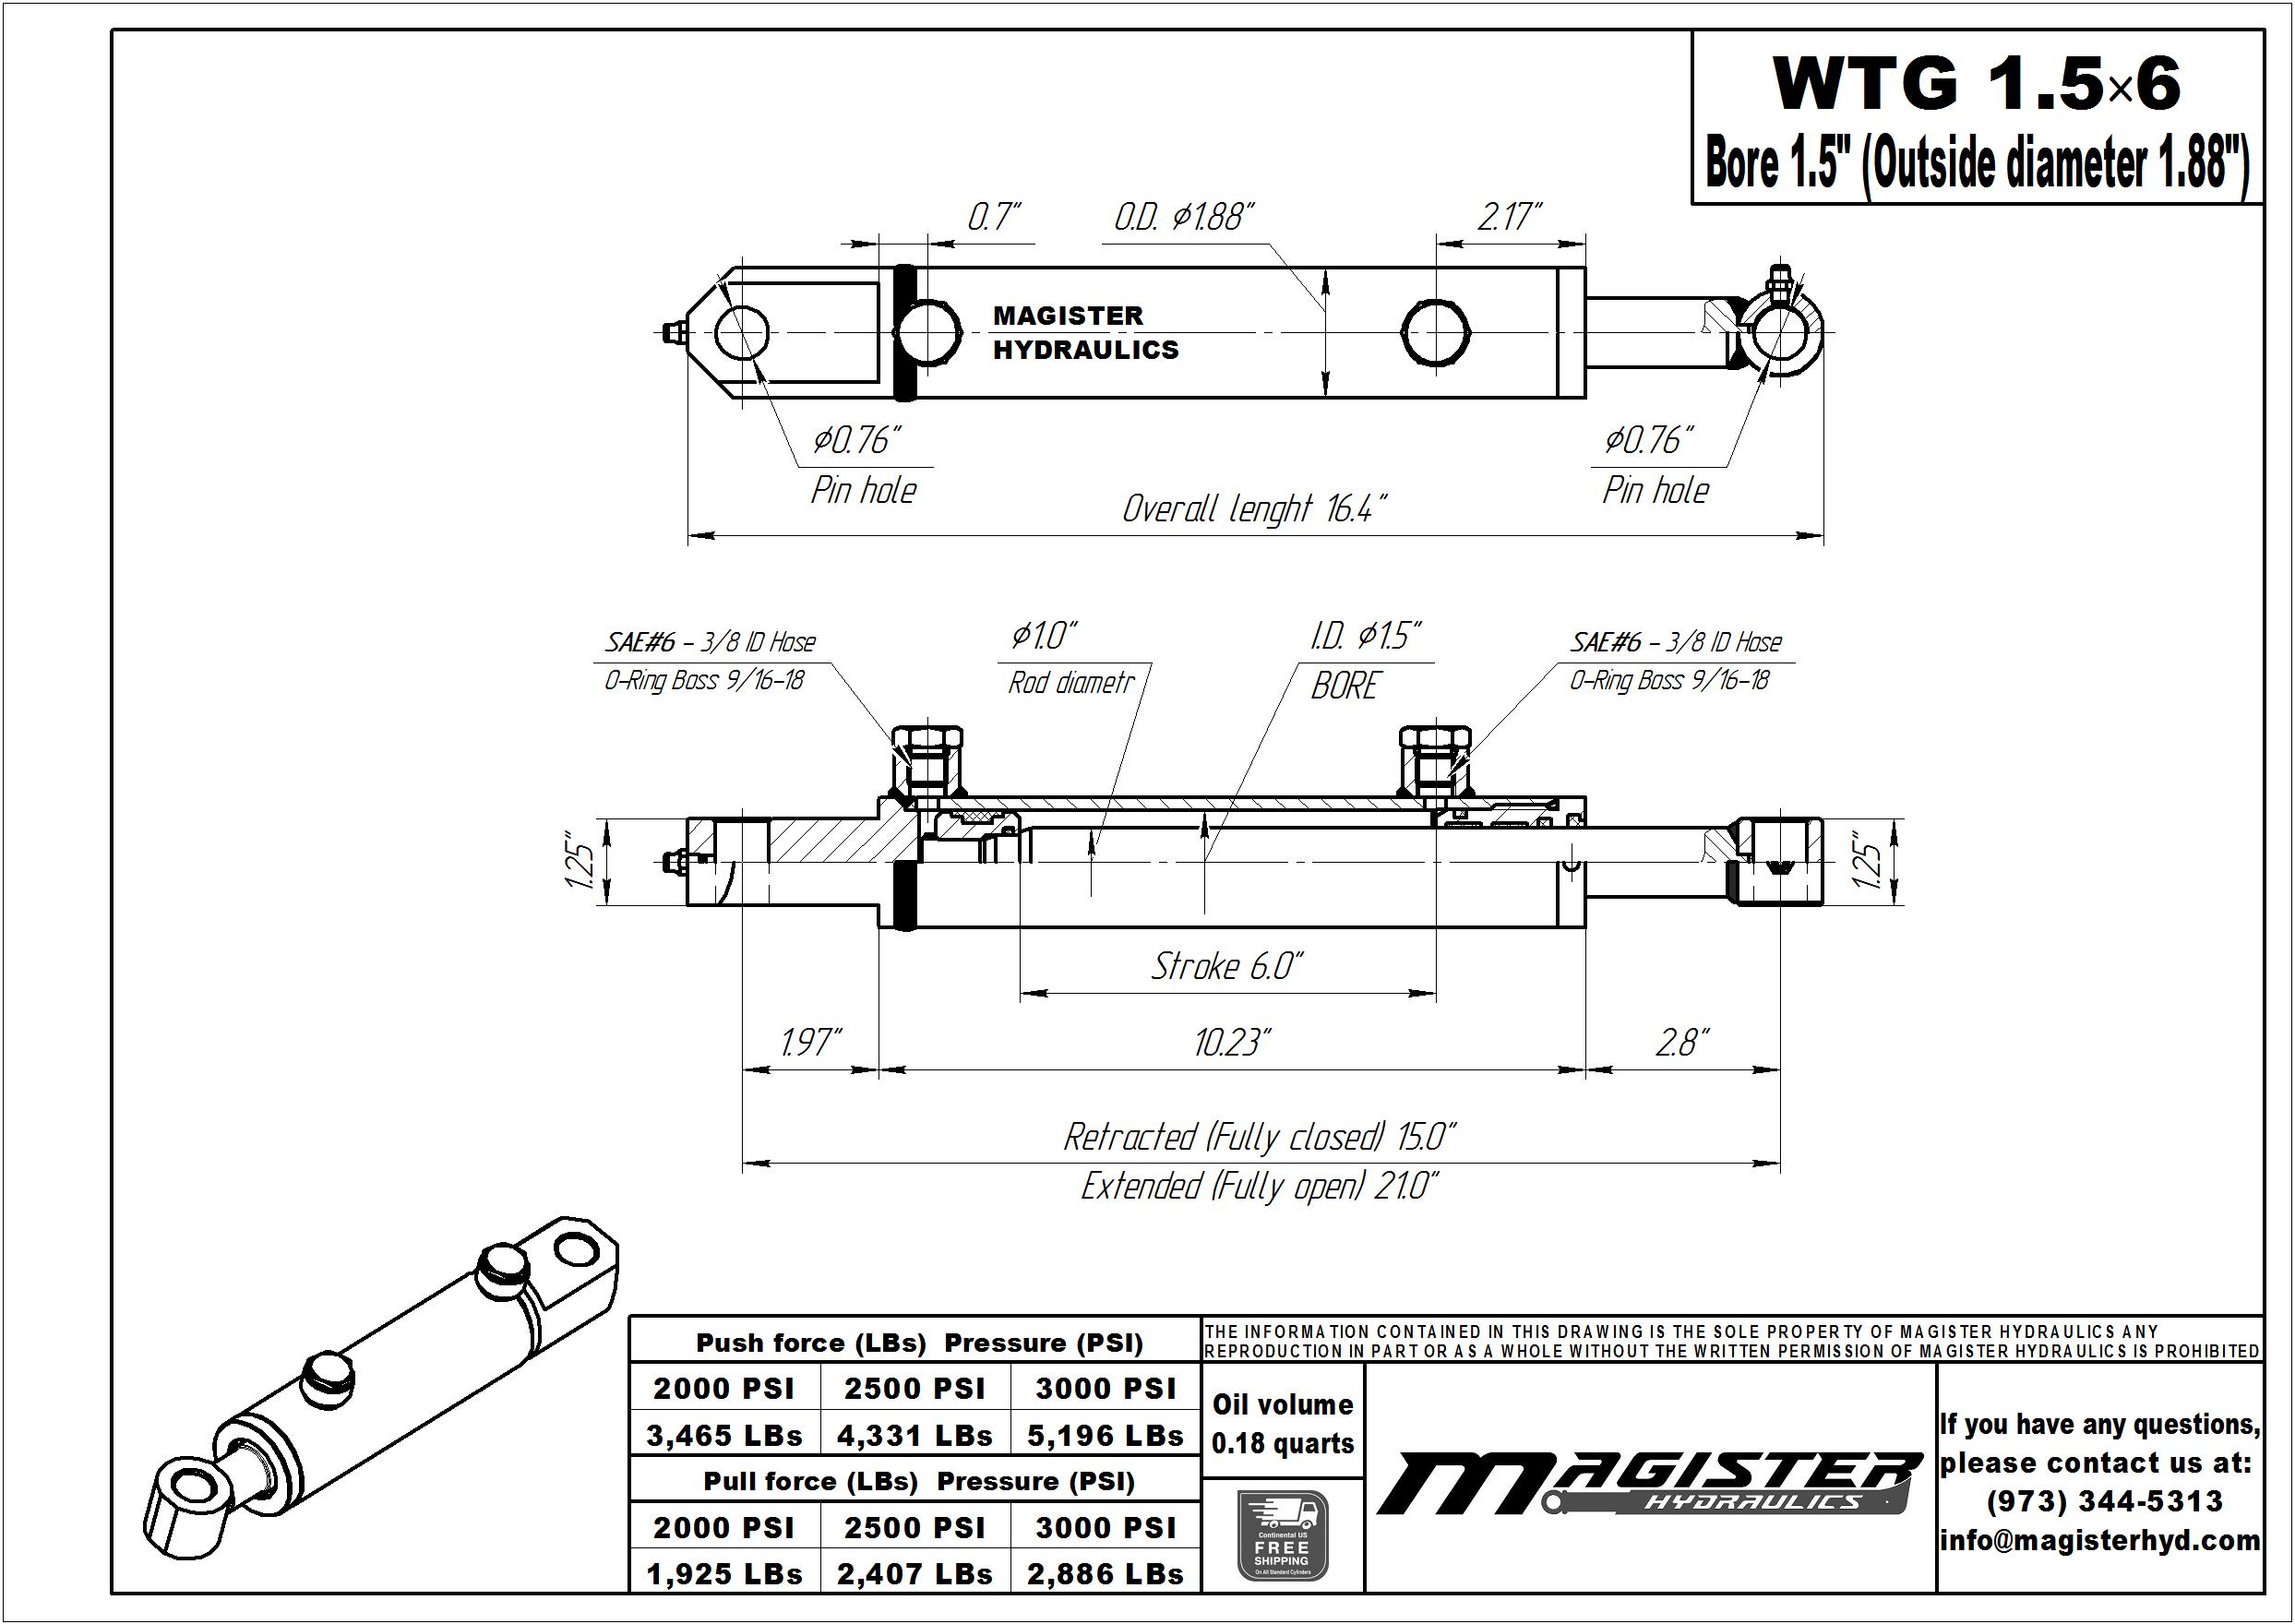 1.5 bore x 6 stroke hydraulic cylinder, welded tang double acting cylinder | Magister Hydraulics